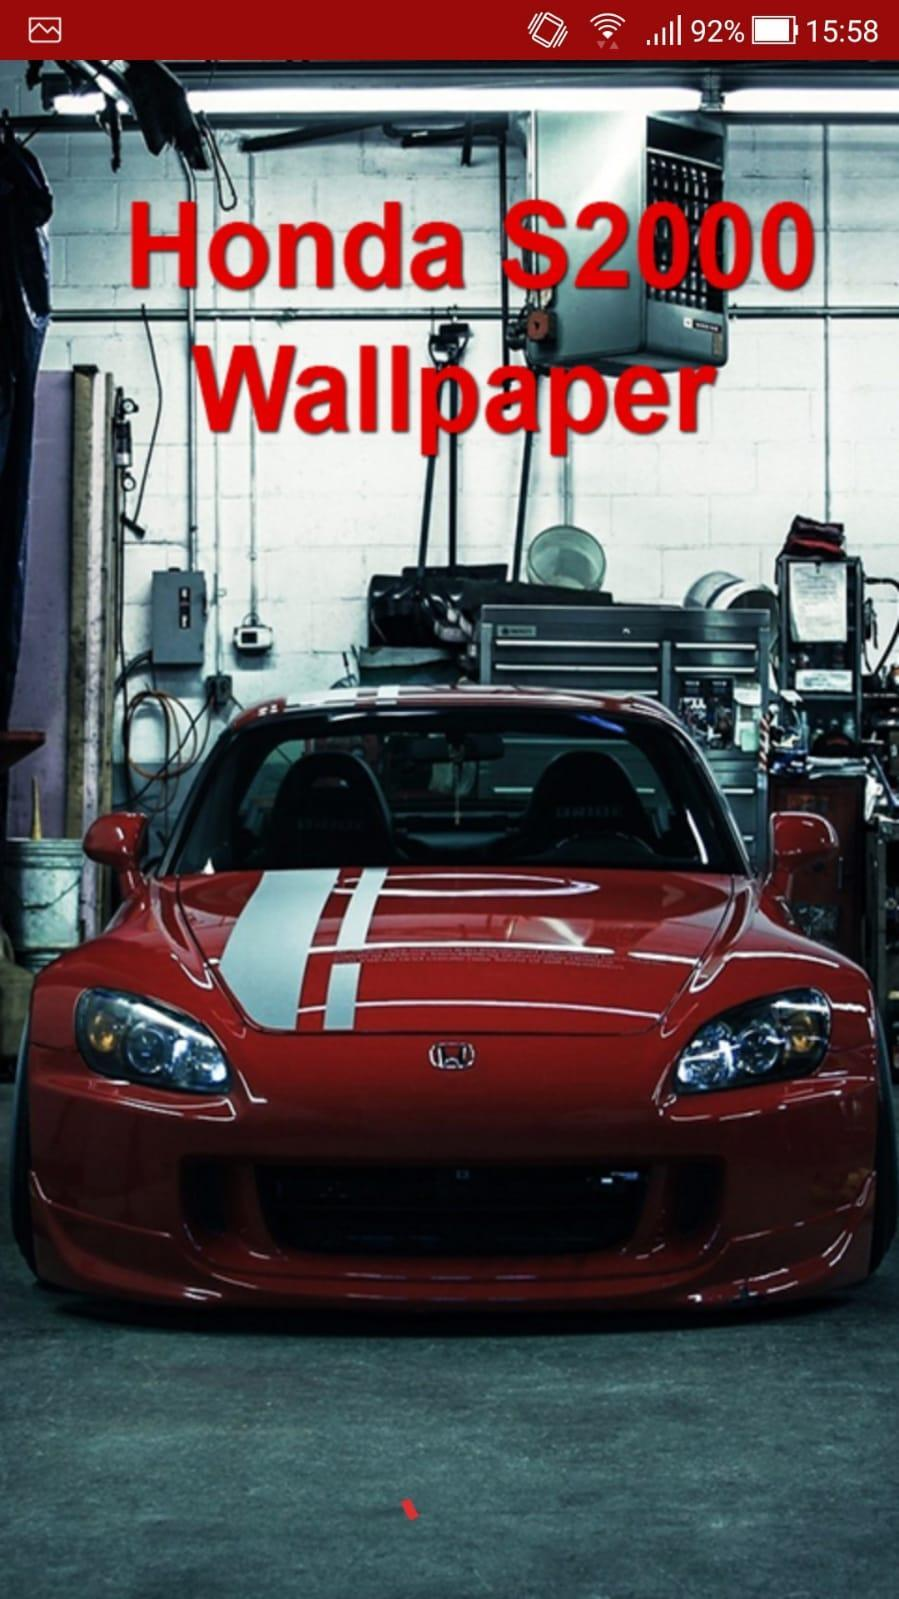 Honda S2000 Wallpaper For Android Apk Download